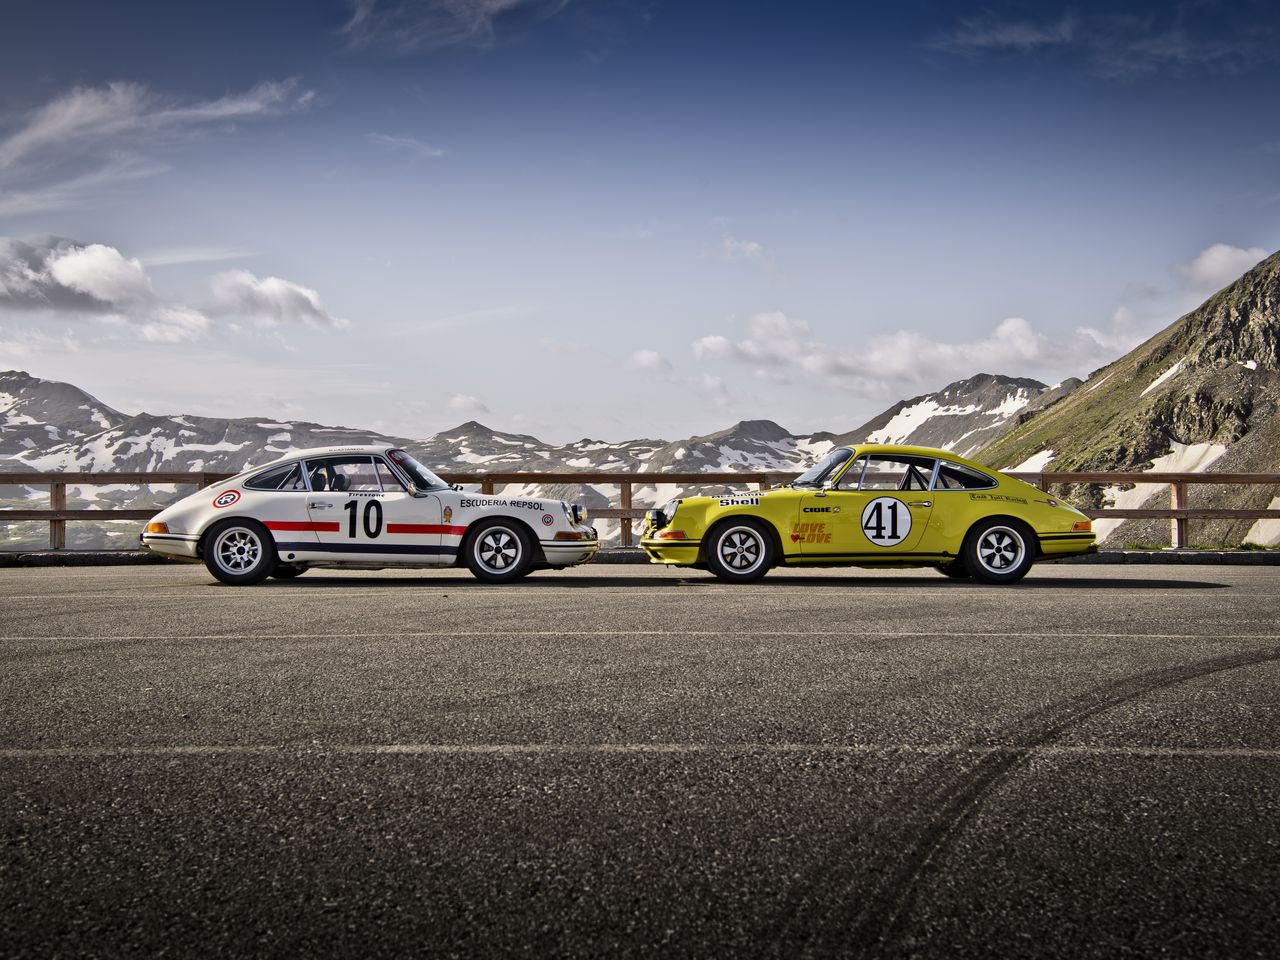 The Porsche 911 2.5 ST (right), GT class winner at Le Mans in 1972, later went into private ownership – and essentially disappeared. In 2013 it was rediscovered by a collector in the US and painstakingly restored at Porsche Classic.